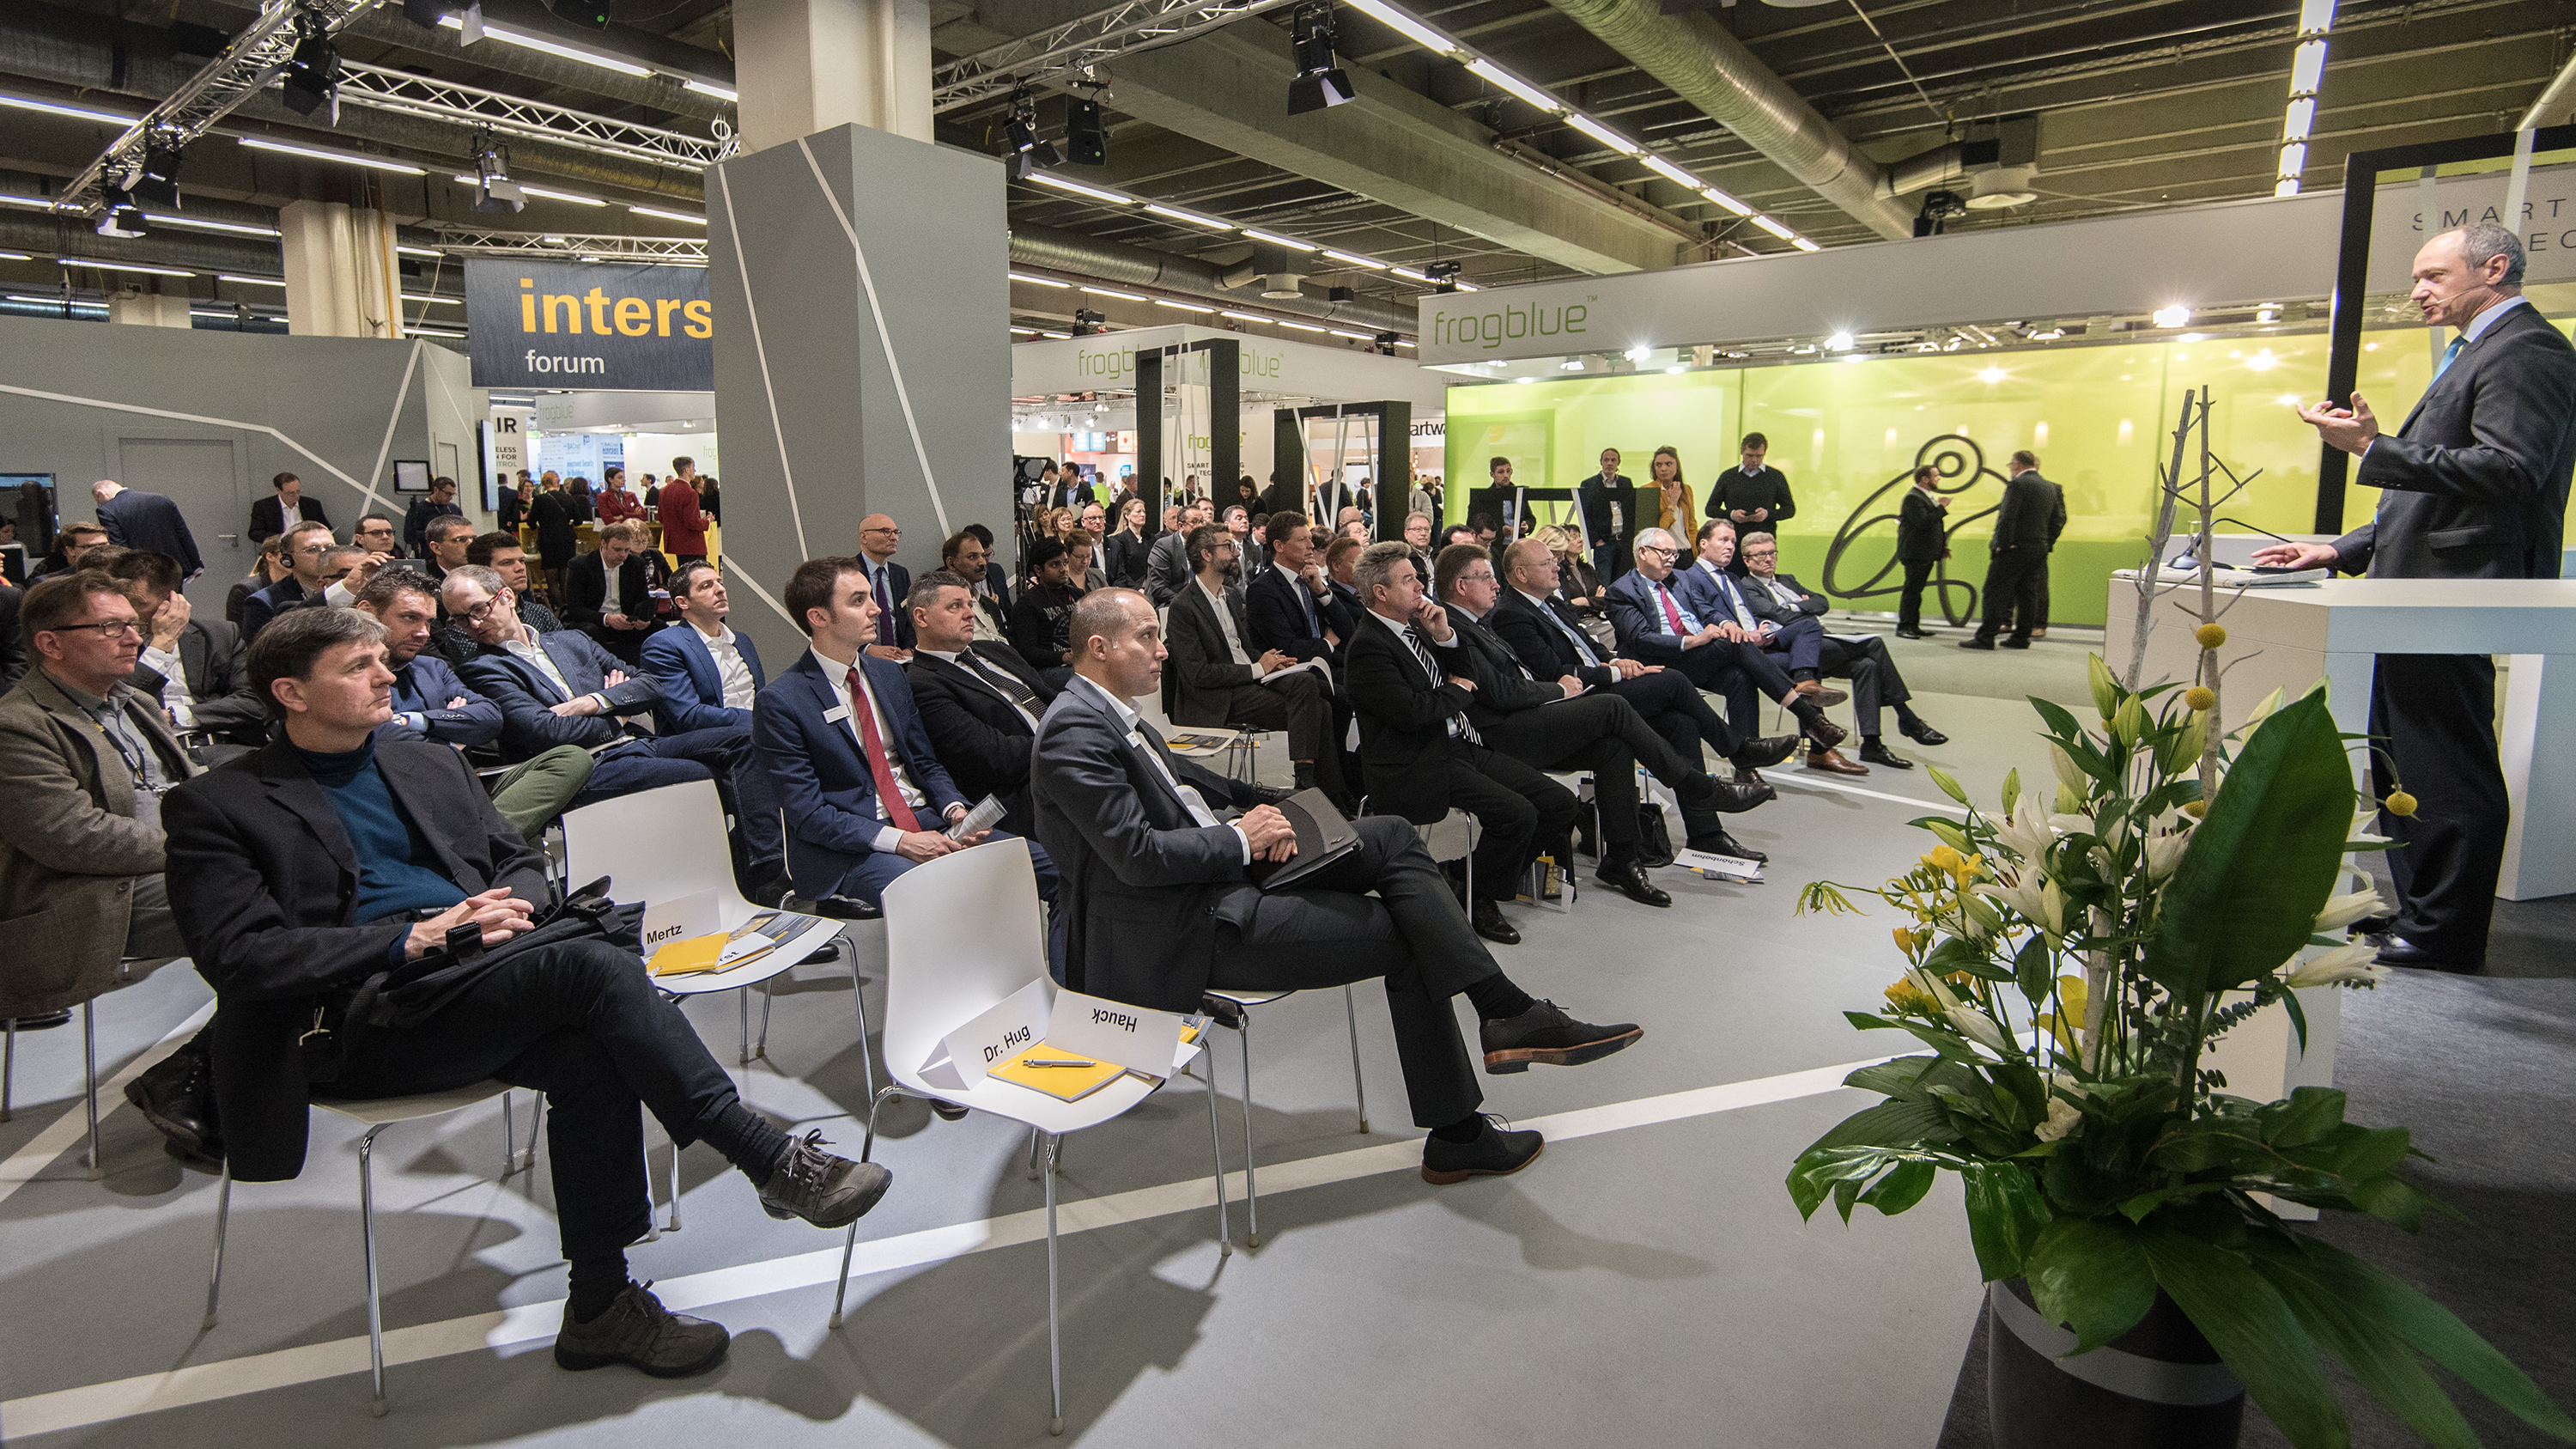 The Intersec Forum is the main information interface at Intersec Building (8 to 13 March 2020), the international platform for connected safety and security technology at Light + Building 2020. Source: Messe Frankfurt / Sandra Gätke